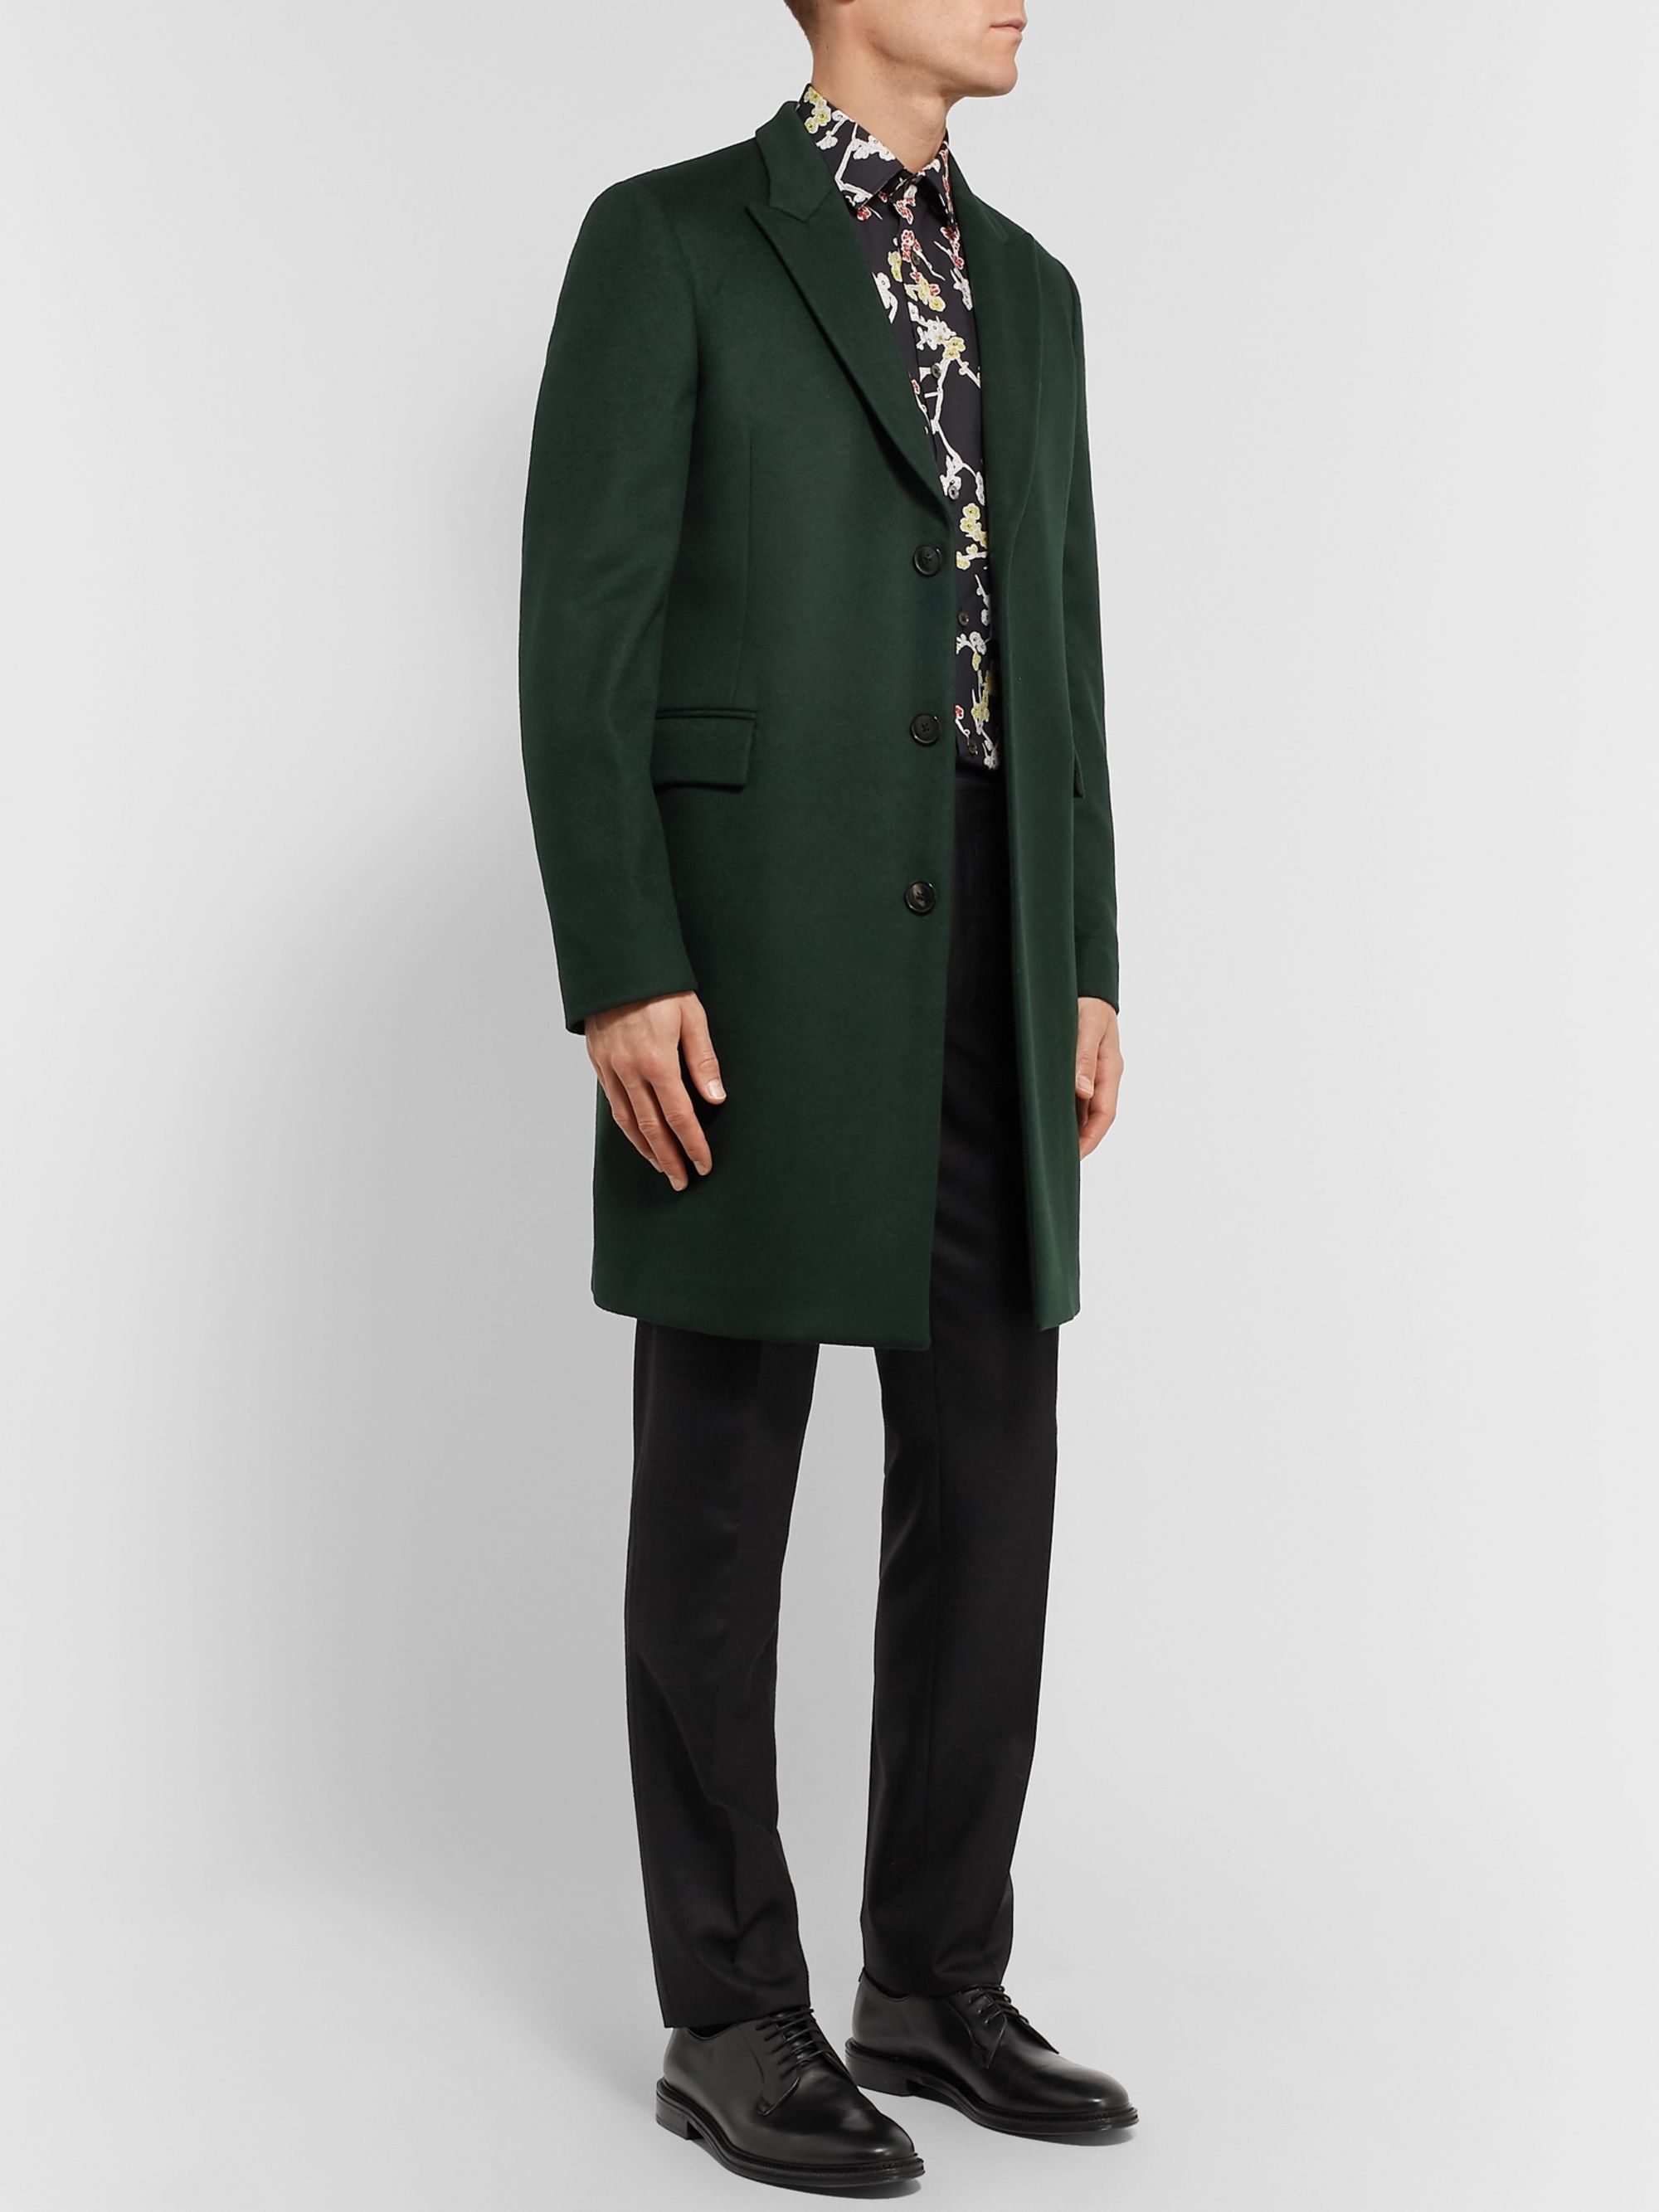 Paul Smith Wool and Cashmere-Blend Overcoat